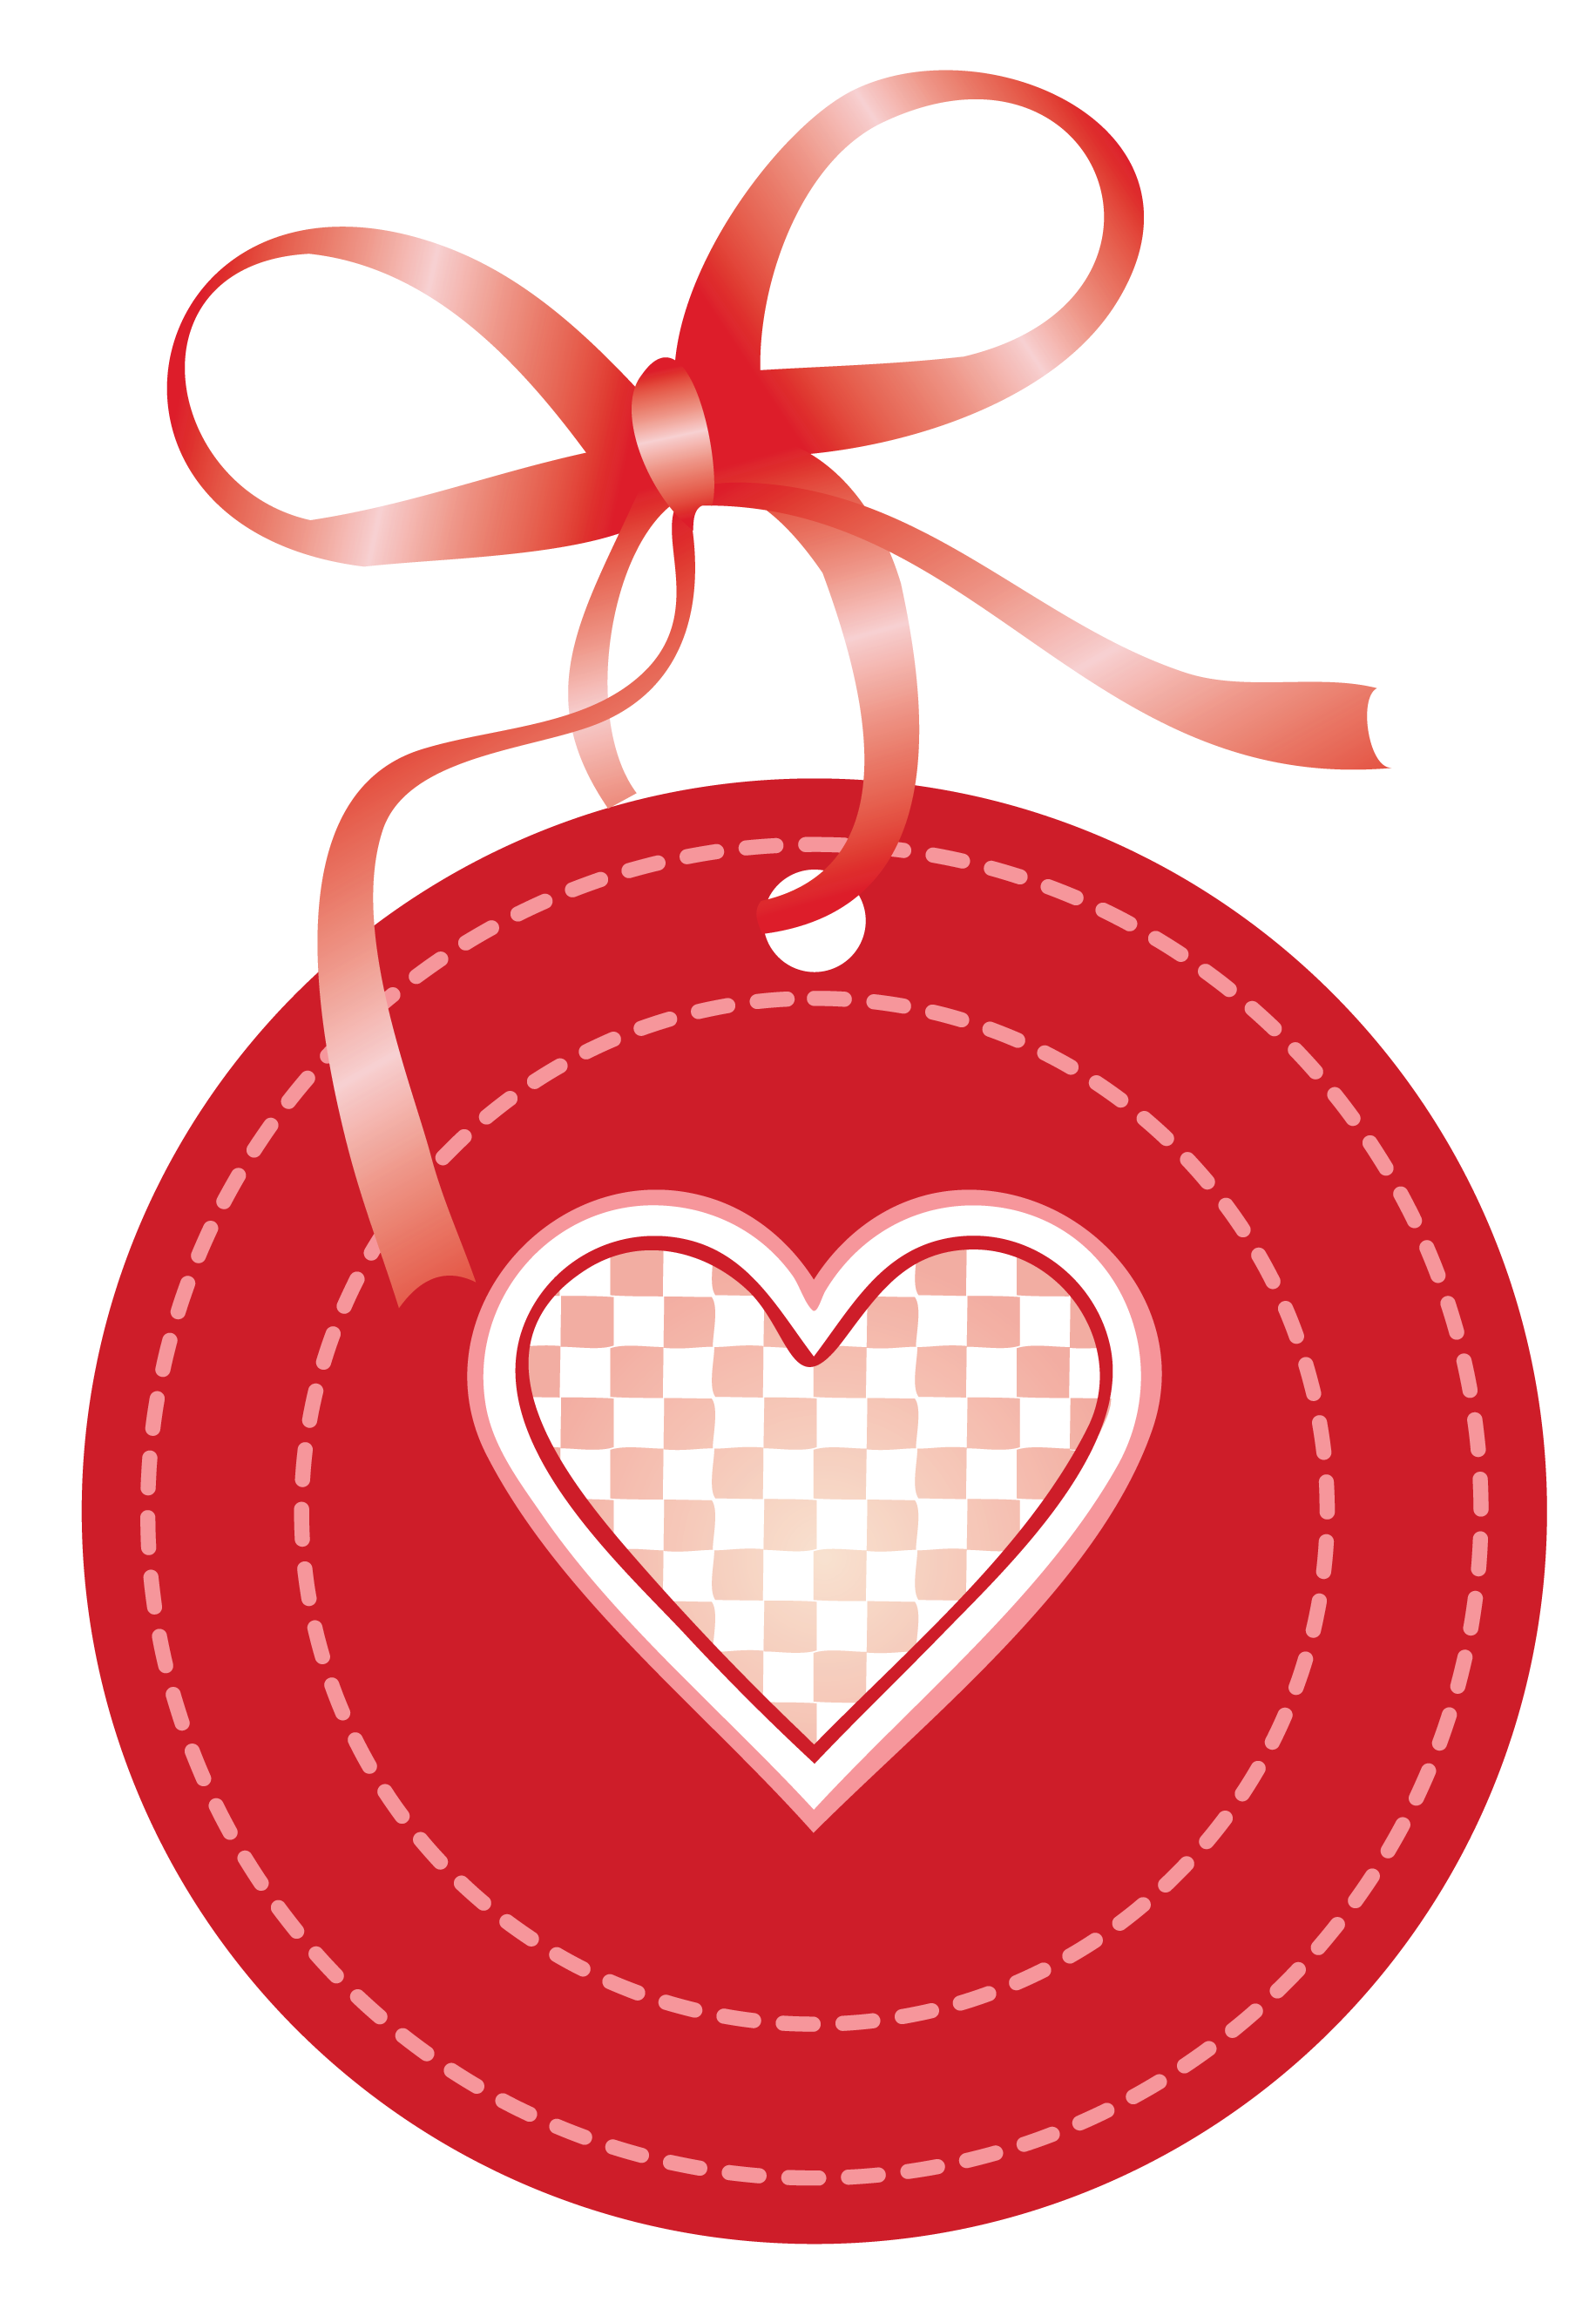 Real heart png. Valentine oval label with